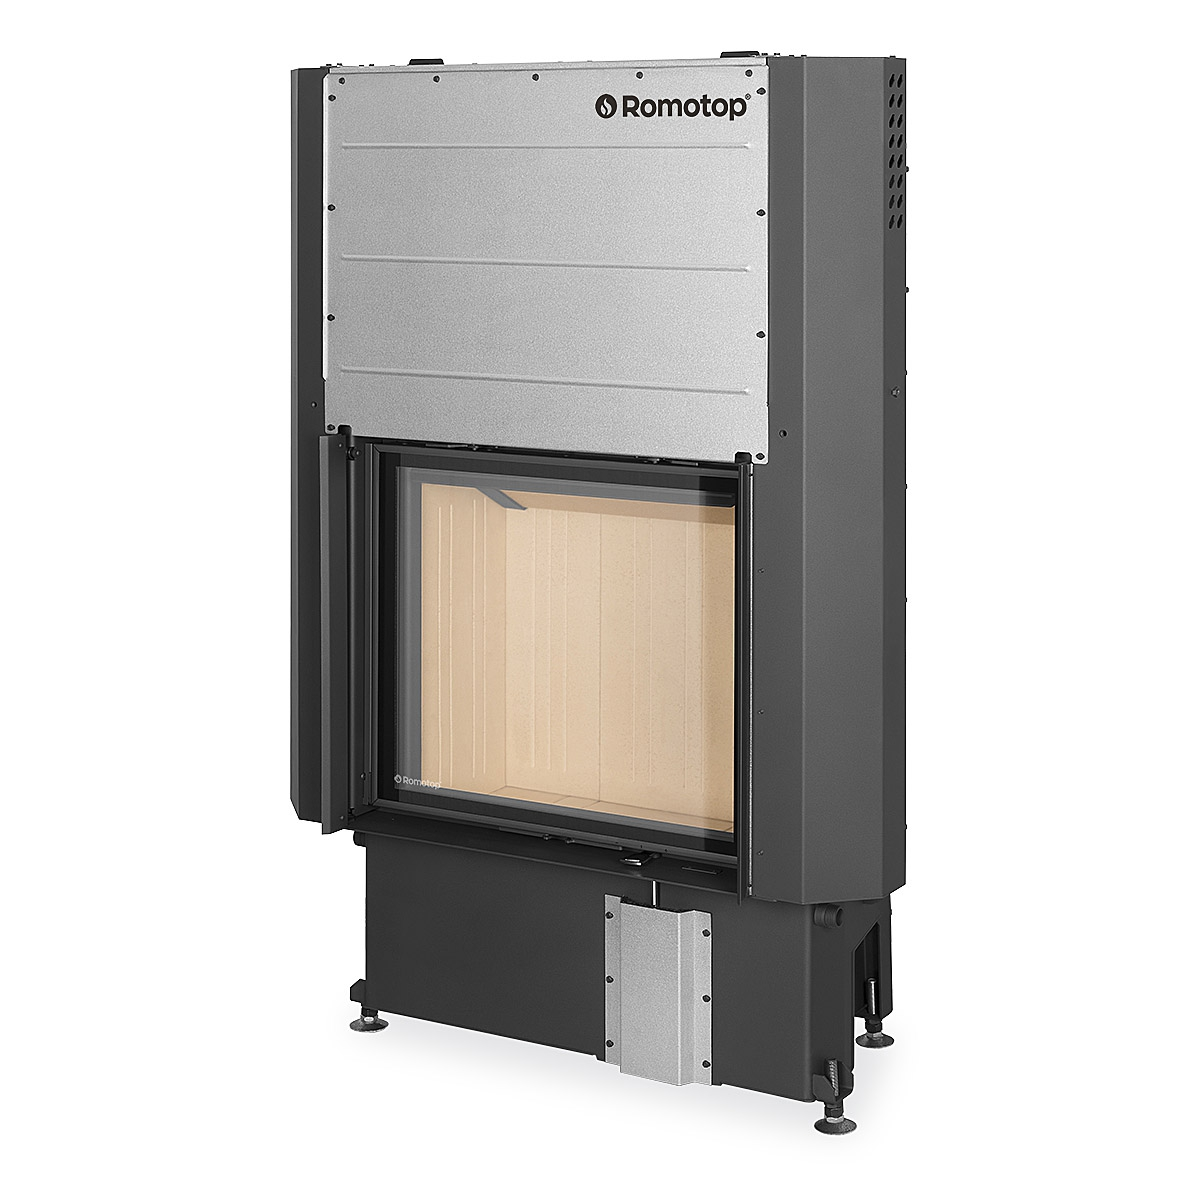 IMPRESSION 2g L 67.60.01 - fireplace insert with lifting door and double glazing